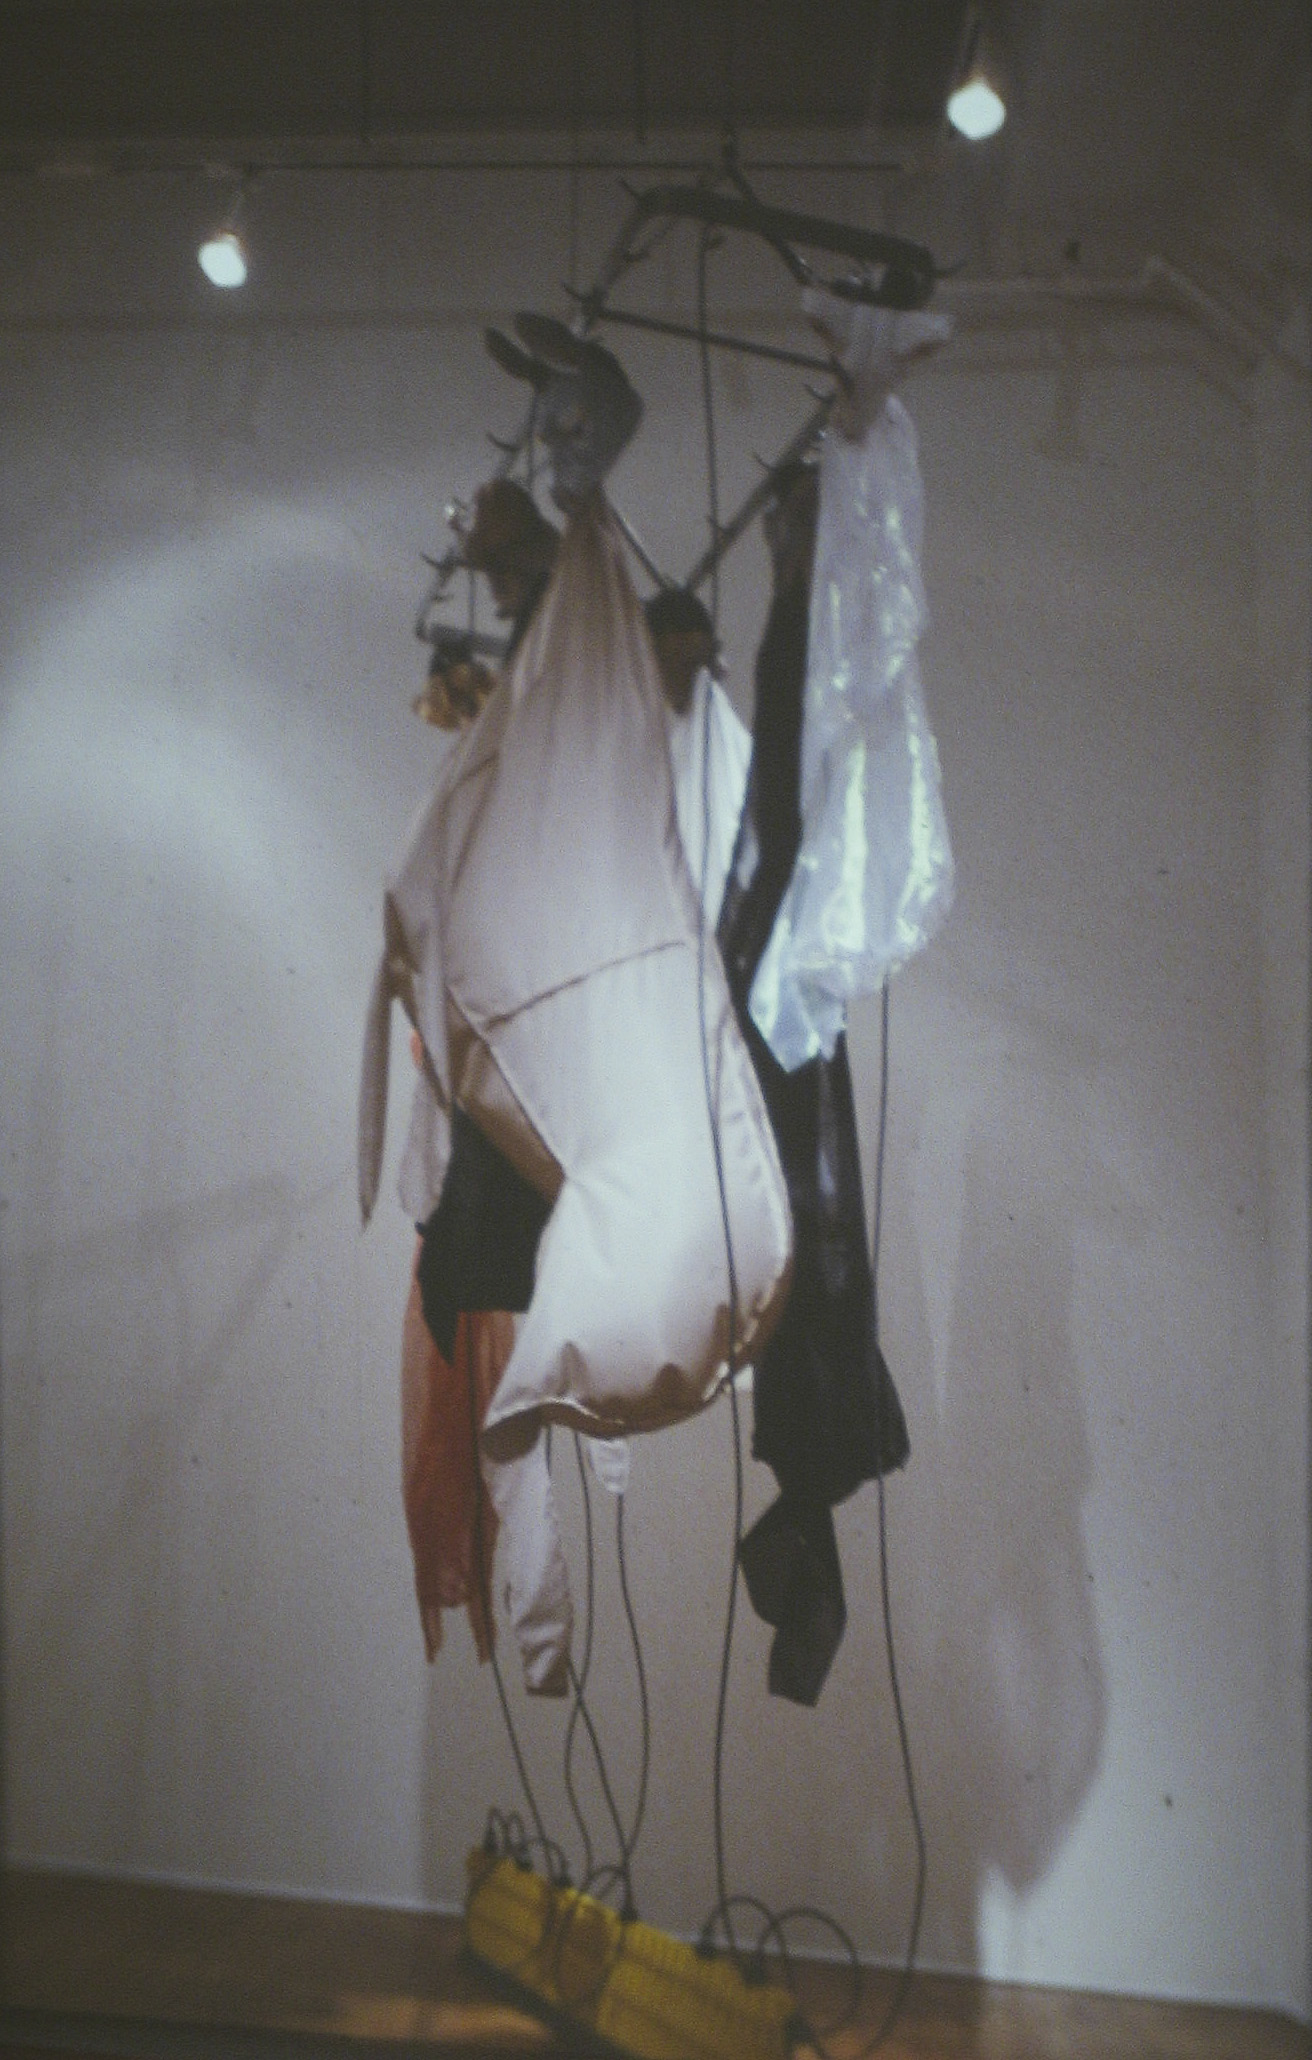 Dennis Oppenheim Armatures for Projection: The Early Factory Projects. Curated by Raul Zamudio. White Box, 2004 (32)